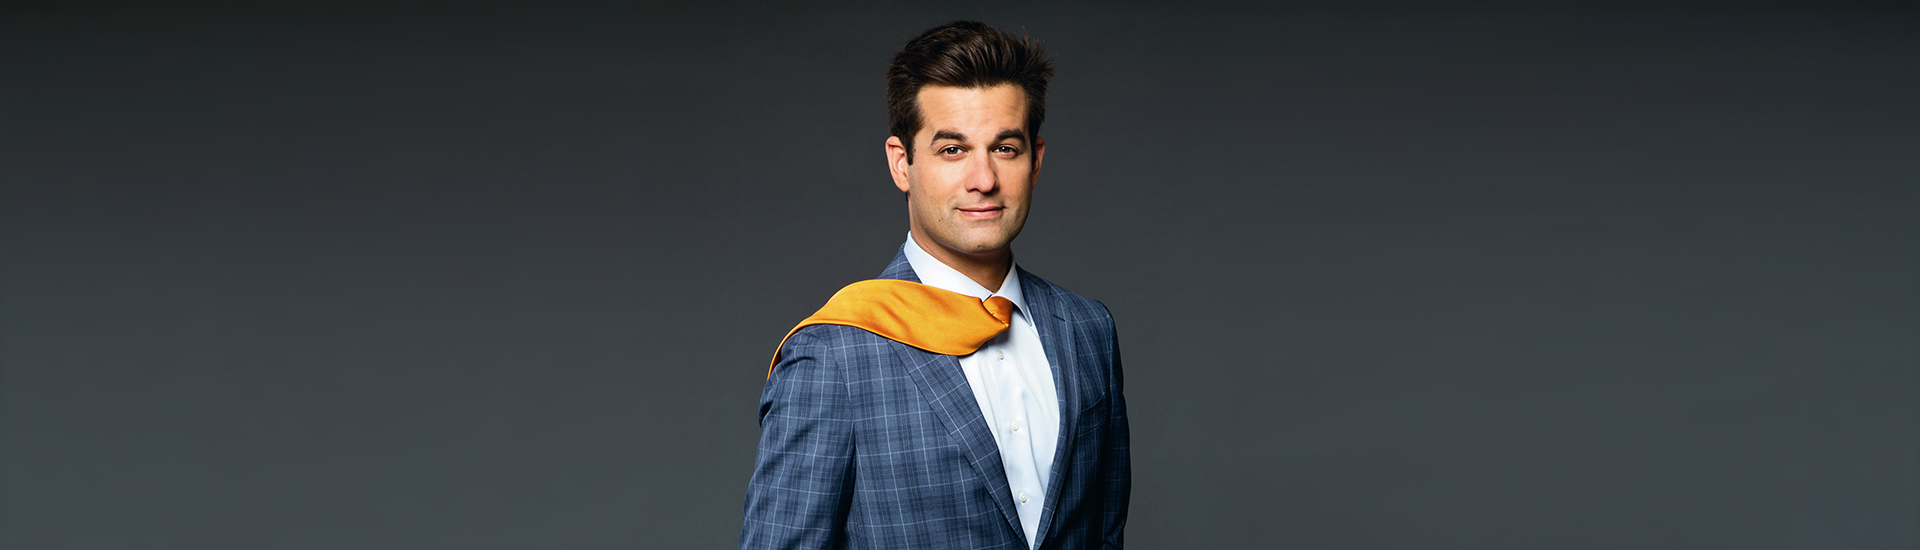 Picture of Michael Kosta